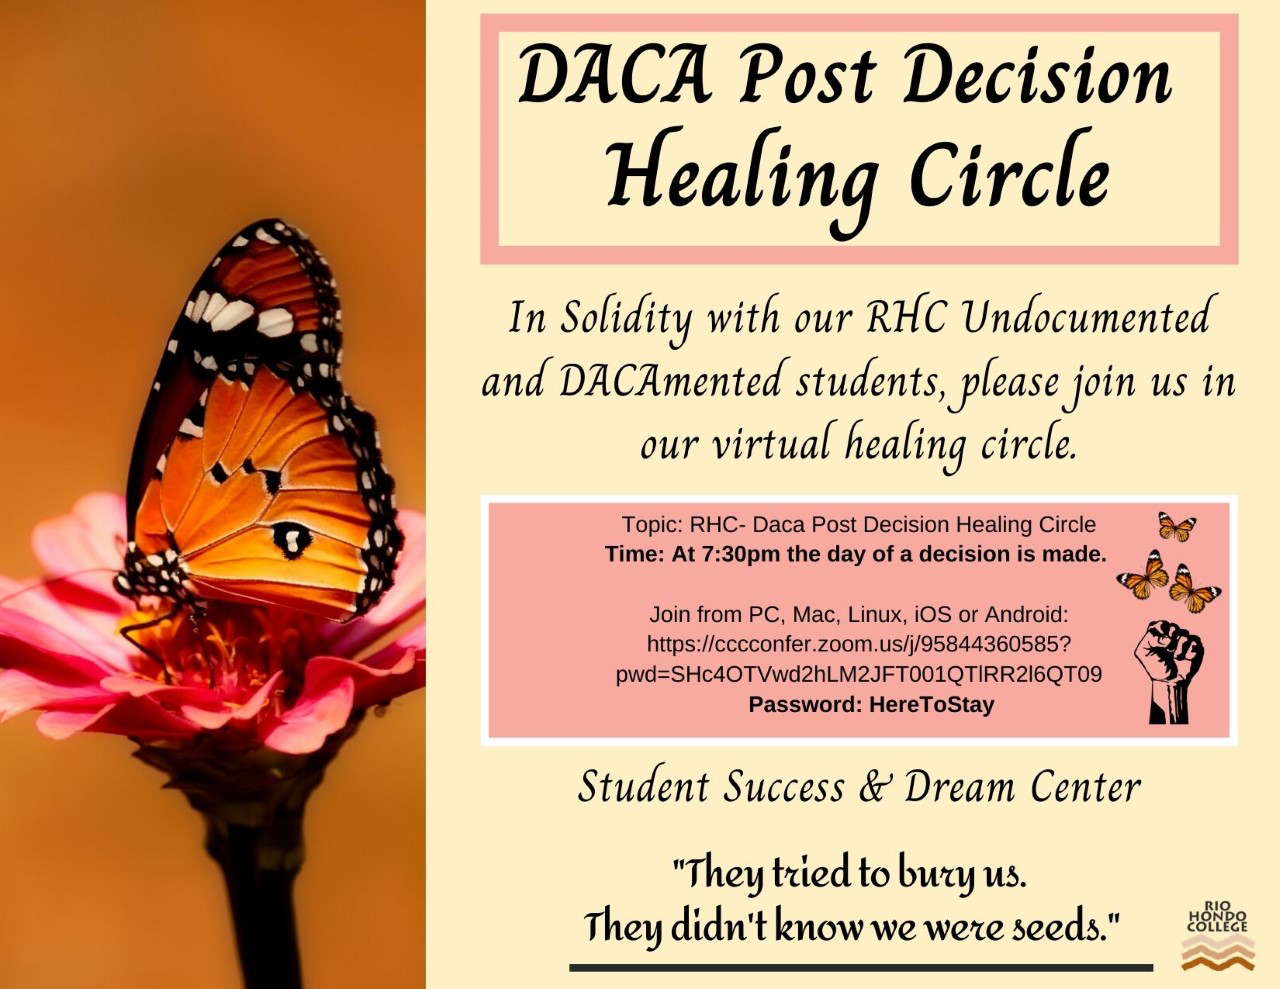 DACA post decision healing circle